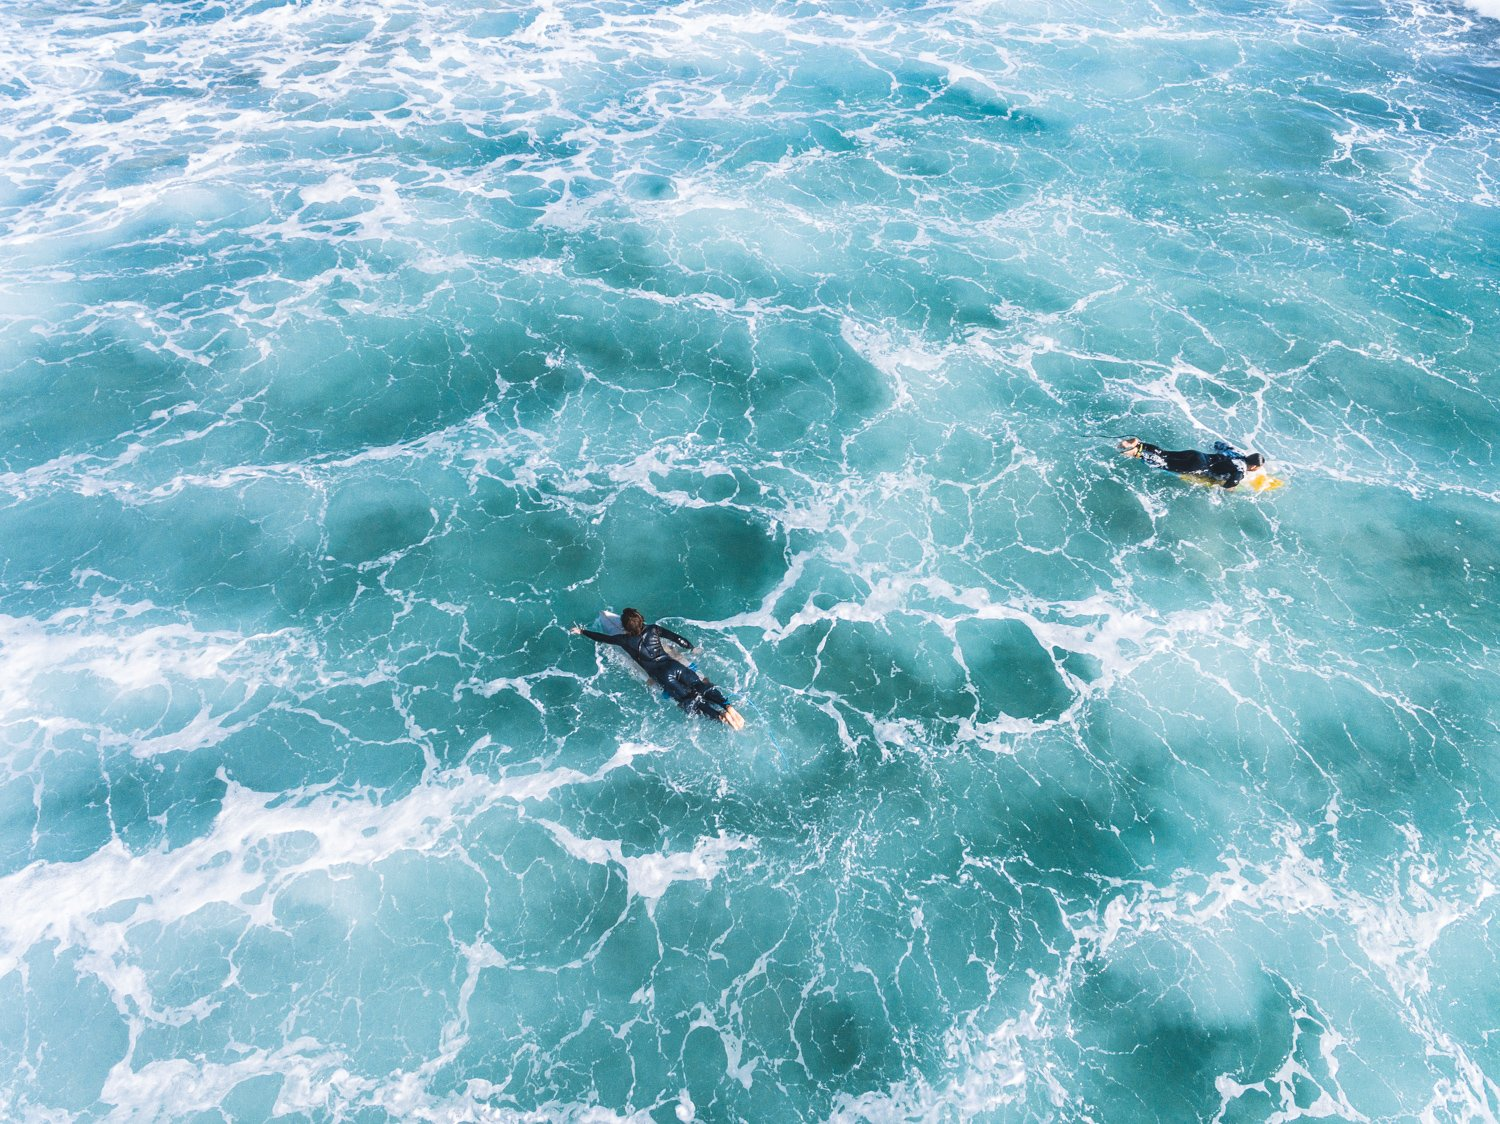 Aerial of two surfers paddling in foamy waves